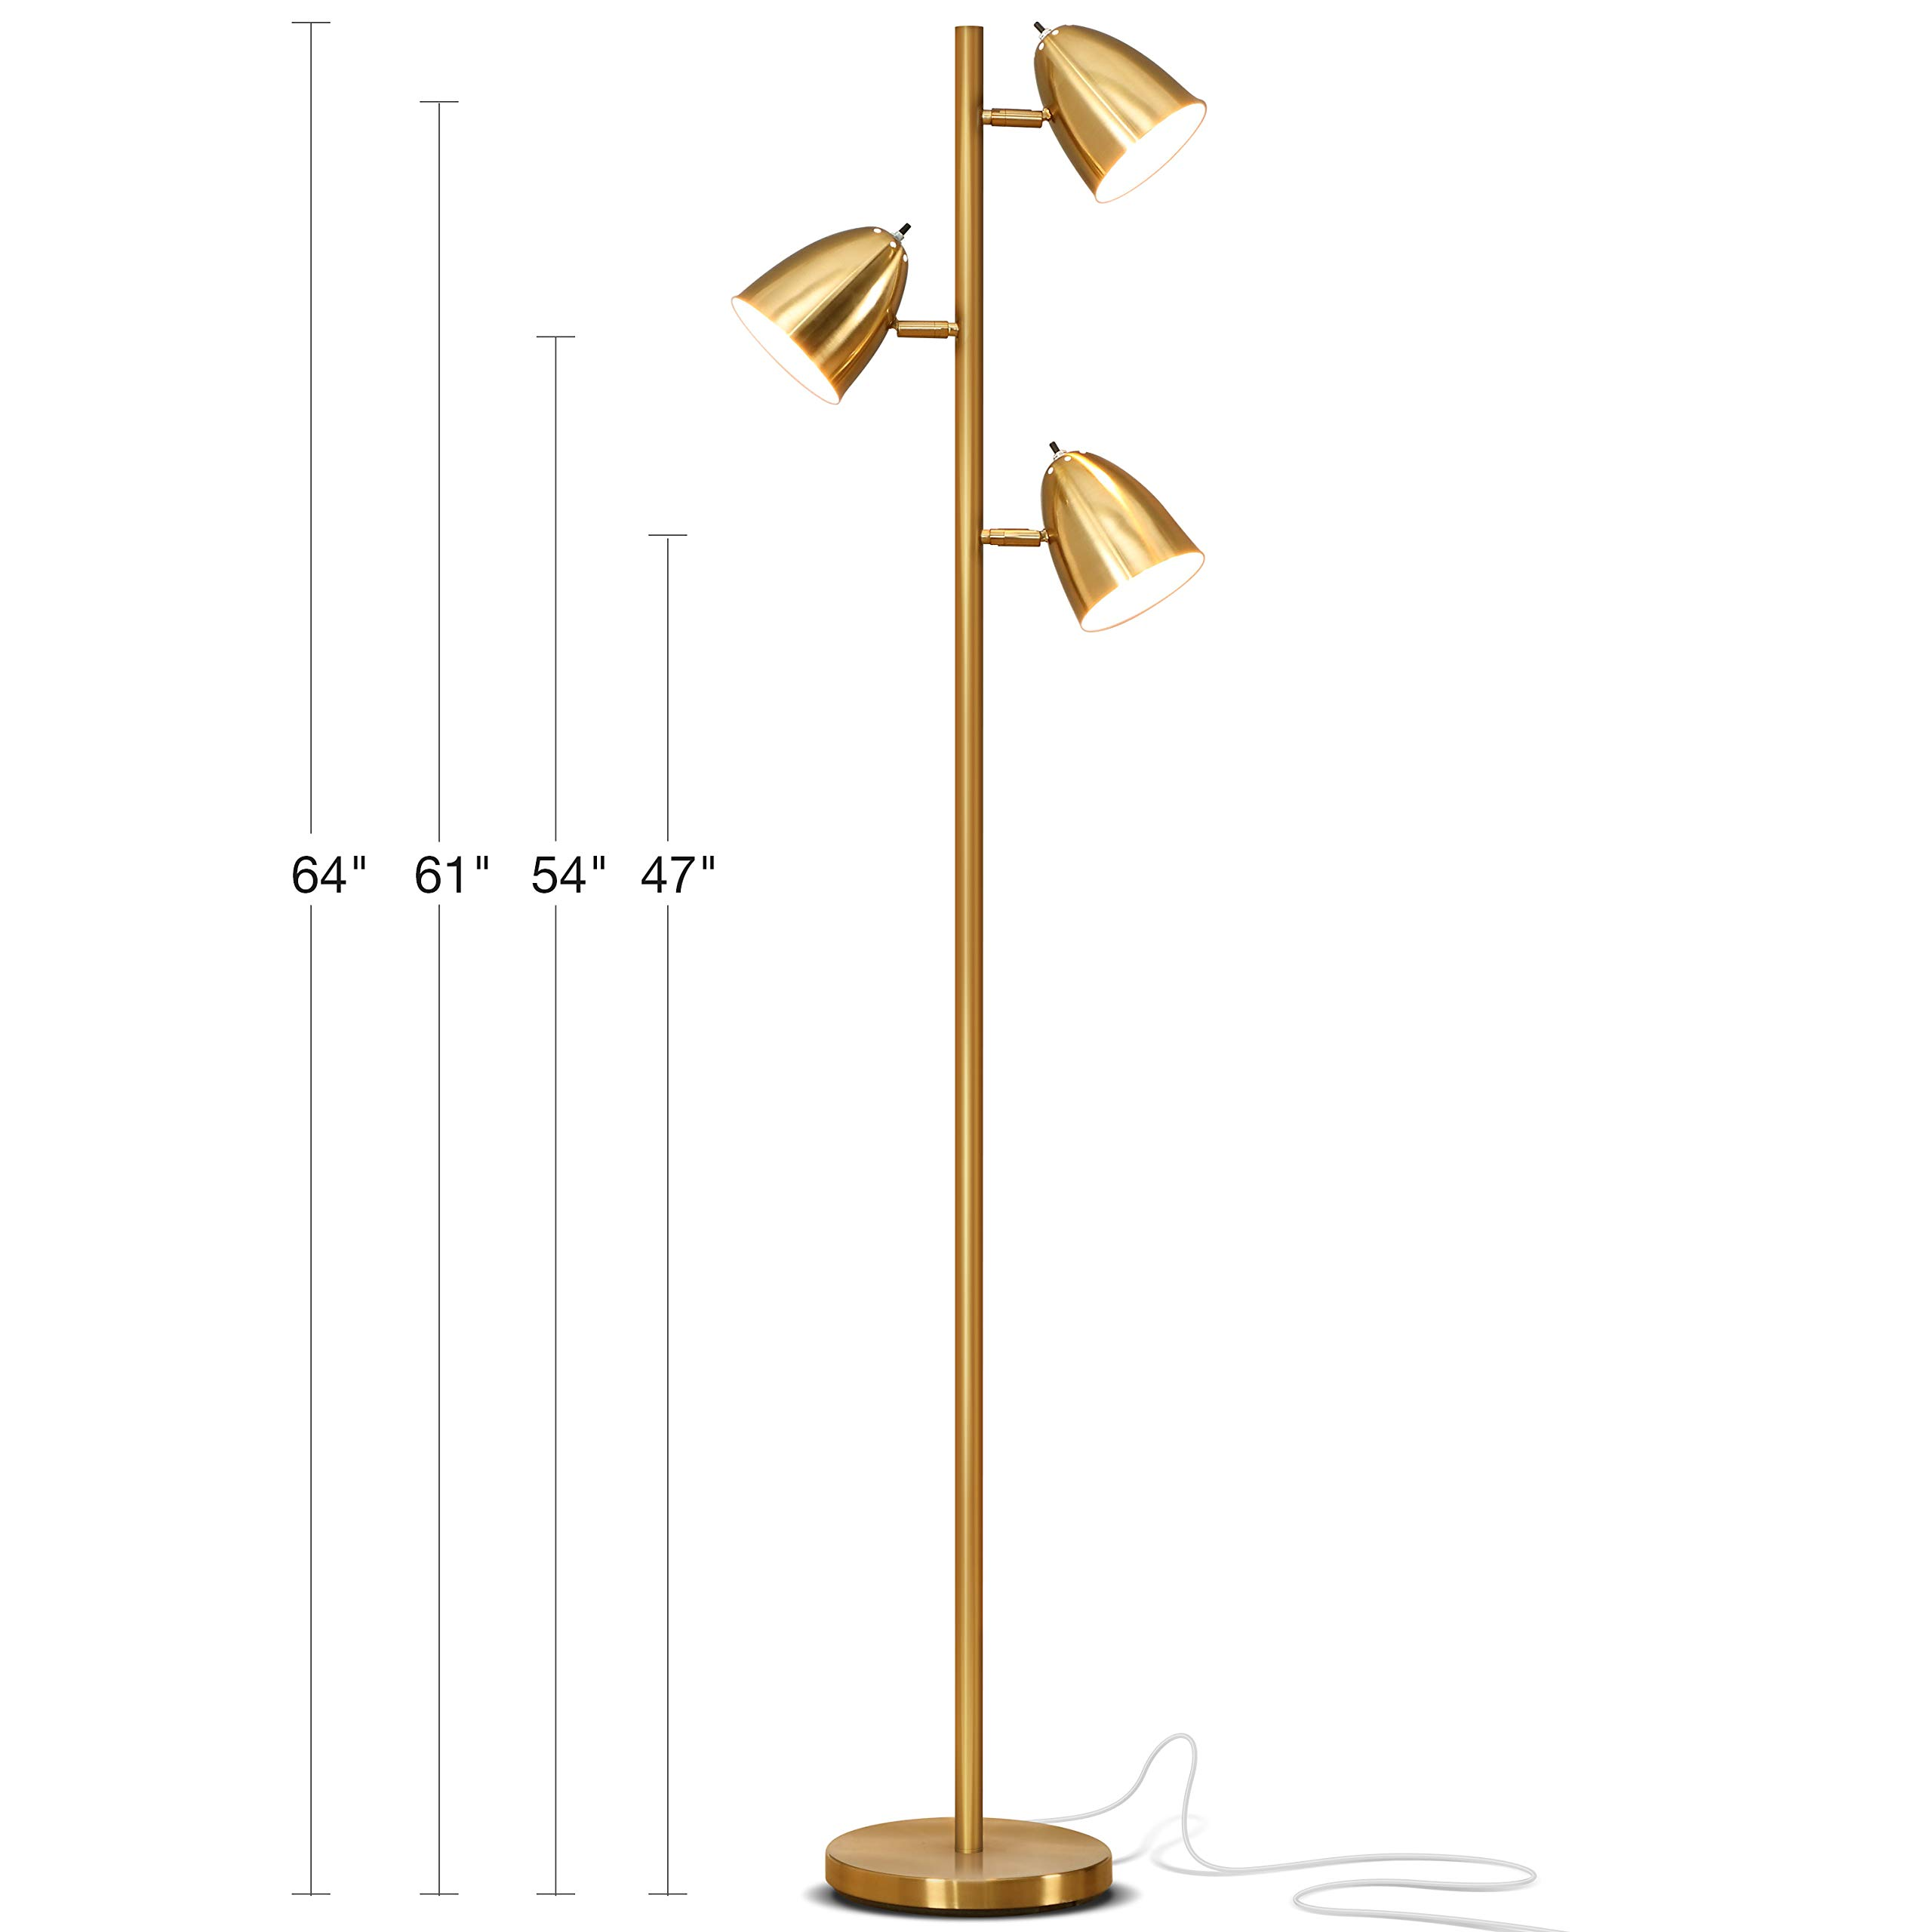 Brightech Jacob - LED Reading and Floor Lamp for Living Rooms & Bedrooms - Classy, Mid Century Modern Adjustable 3 Light Tree - Standing Tall Pole Lamp with 3 LED Bulbs - Antique Brass/Gold by Brightech (Image #3)